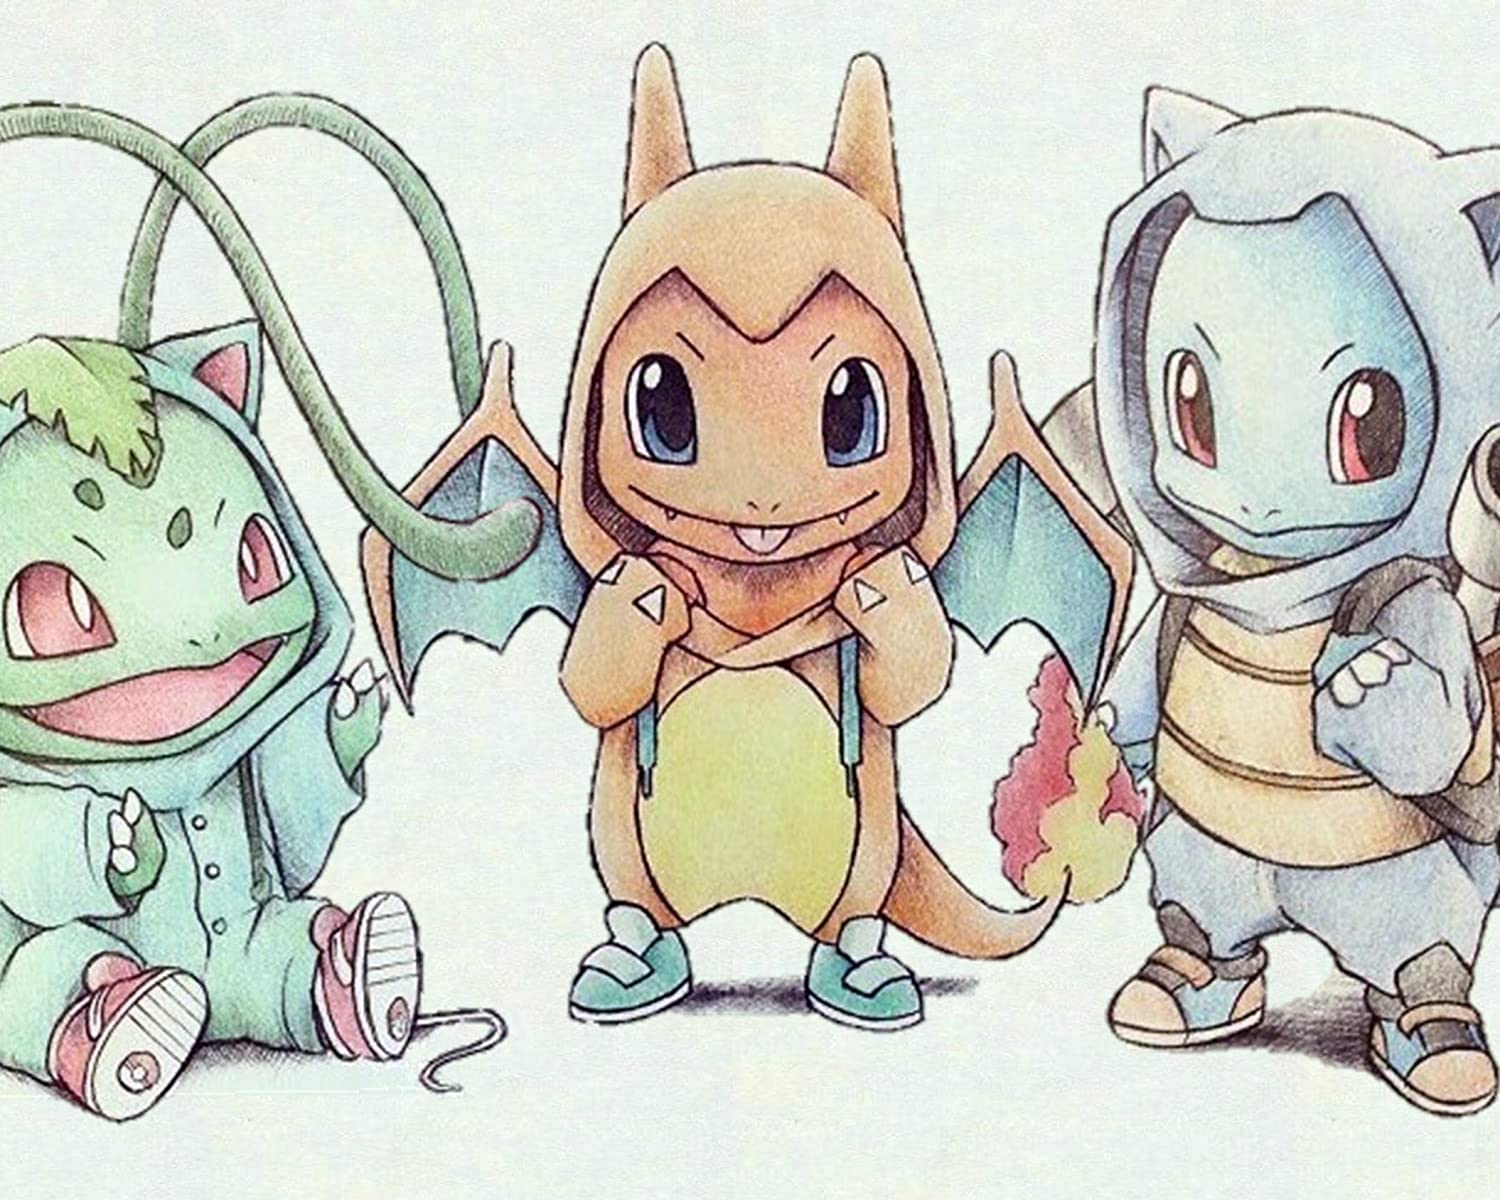 amazon com pokemon bulbasaur charmander squirtle color pencil